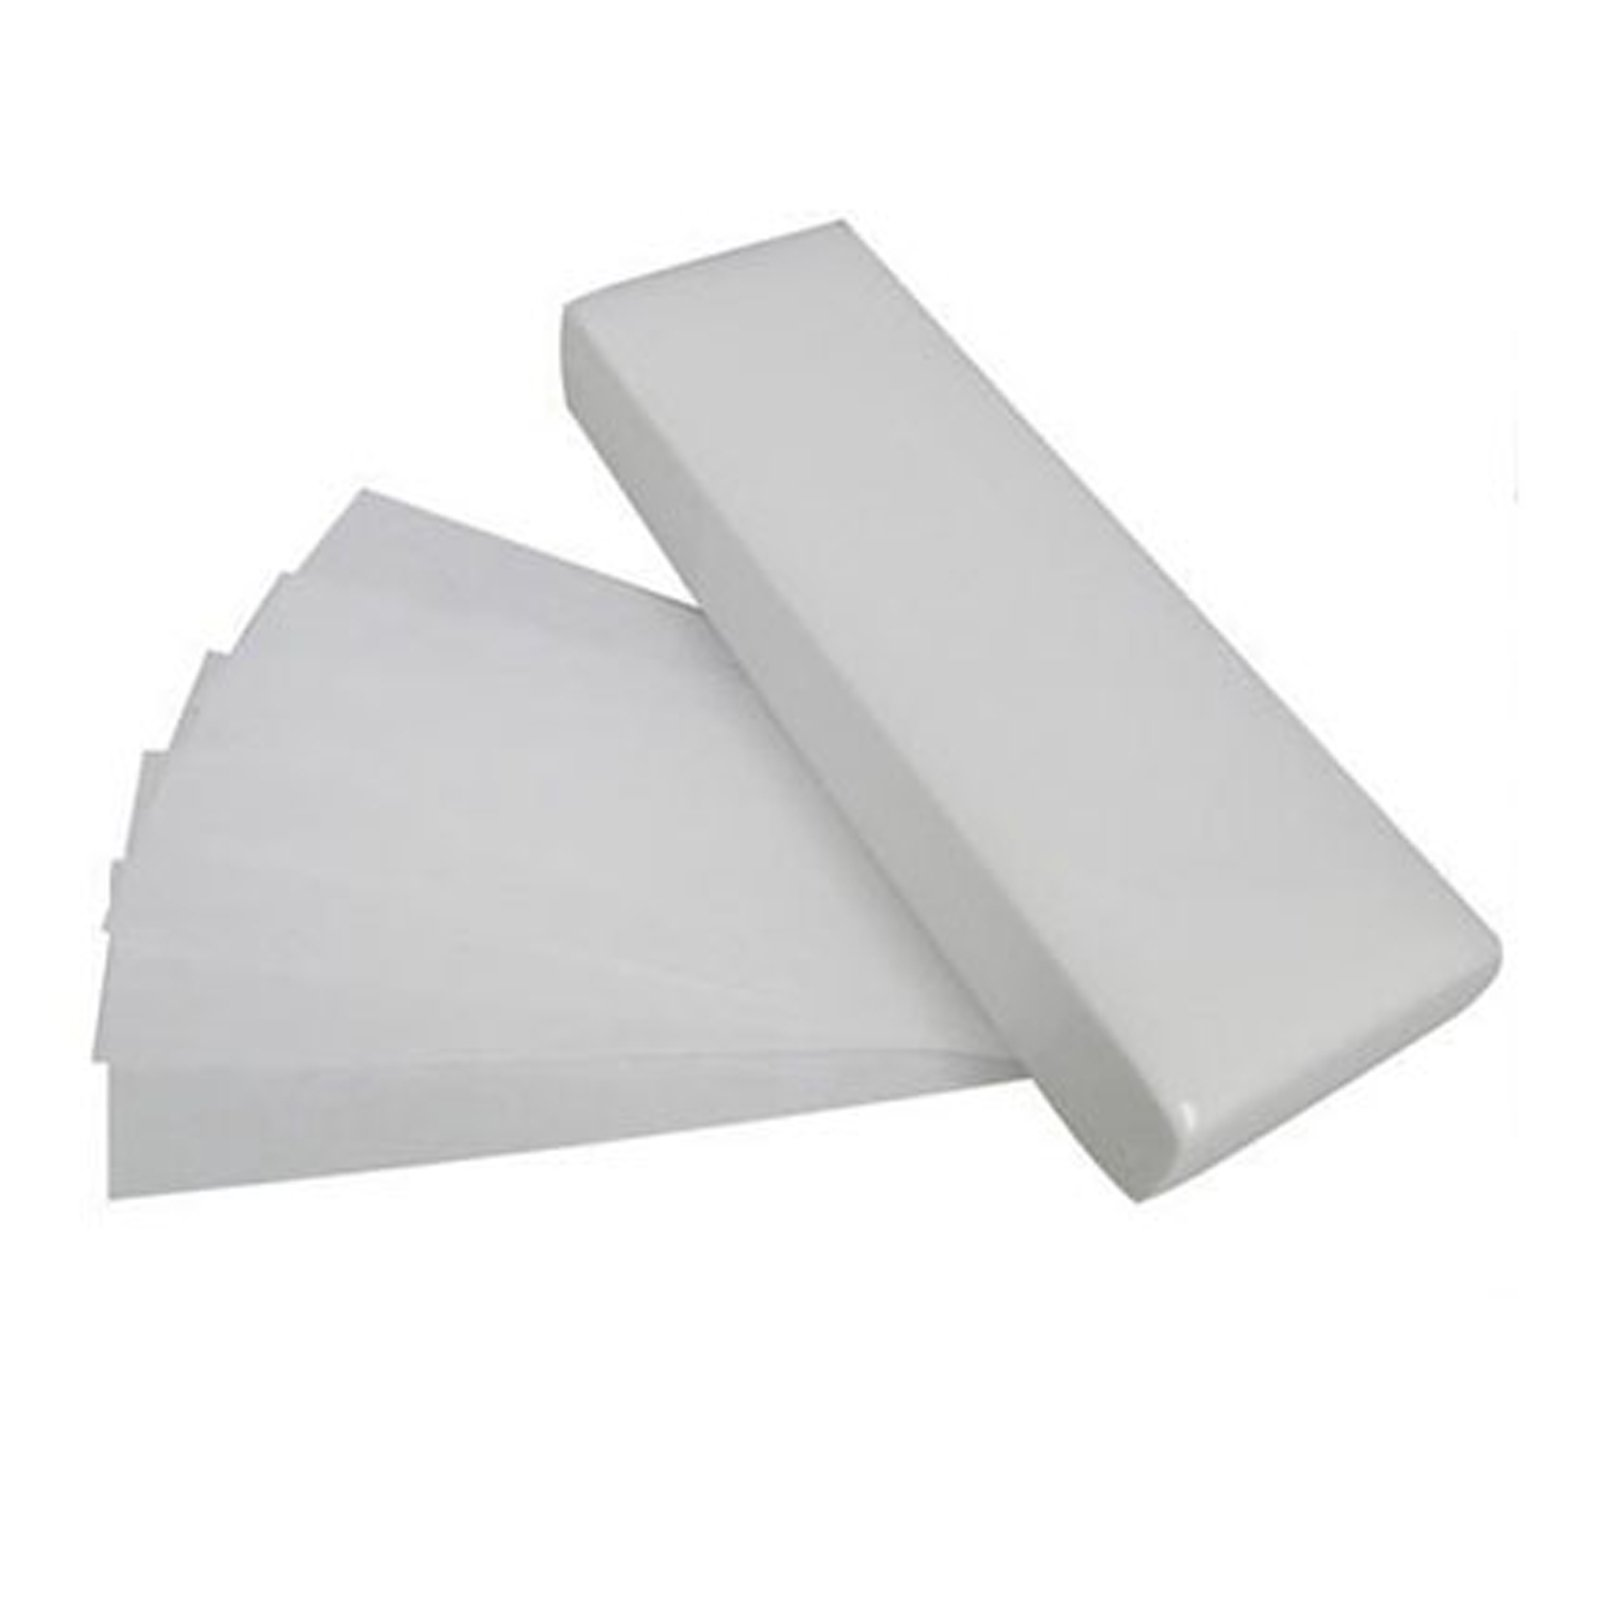 Professional Paper Waxing Wax Strips Leg Body Bikini Face Non Woven Quality (Pack of 100)